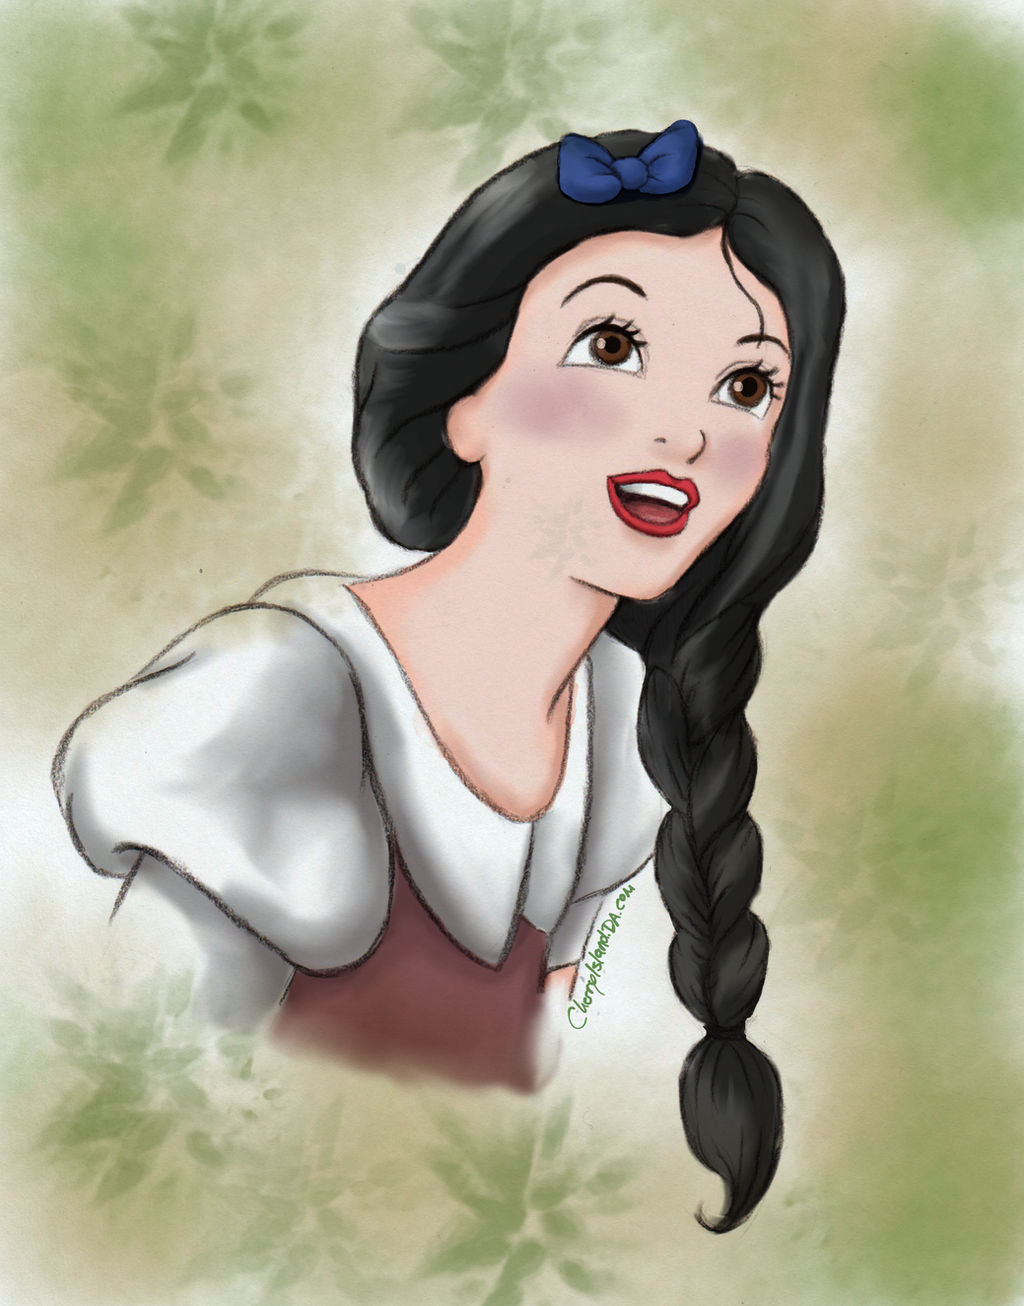 Hair color not hair style poll results disney princess fanpop -  Poll Results Disney Princess Fanpop Snow White Hair And Makeup Tutorial For Long You